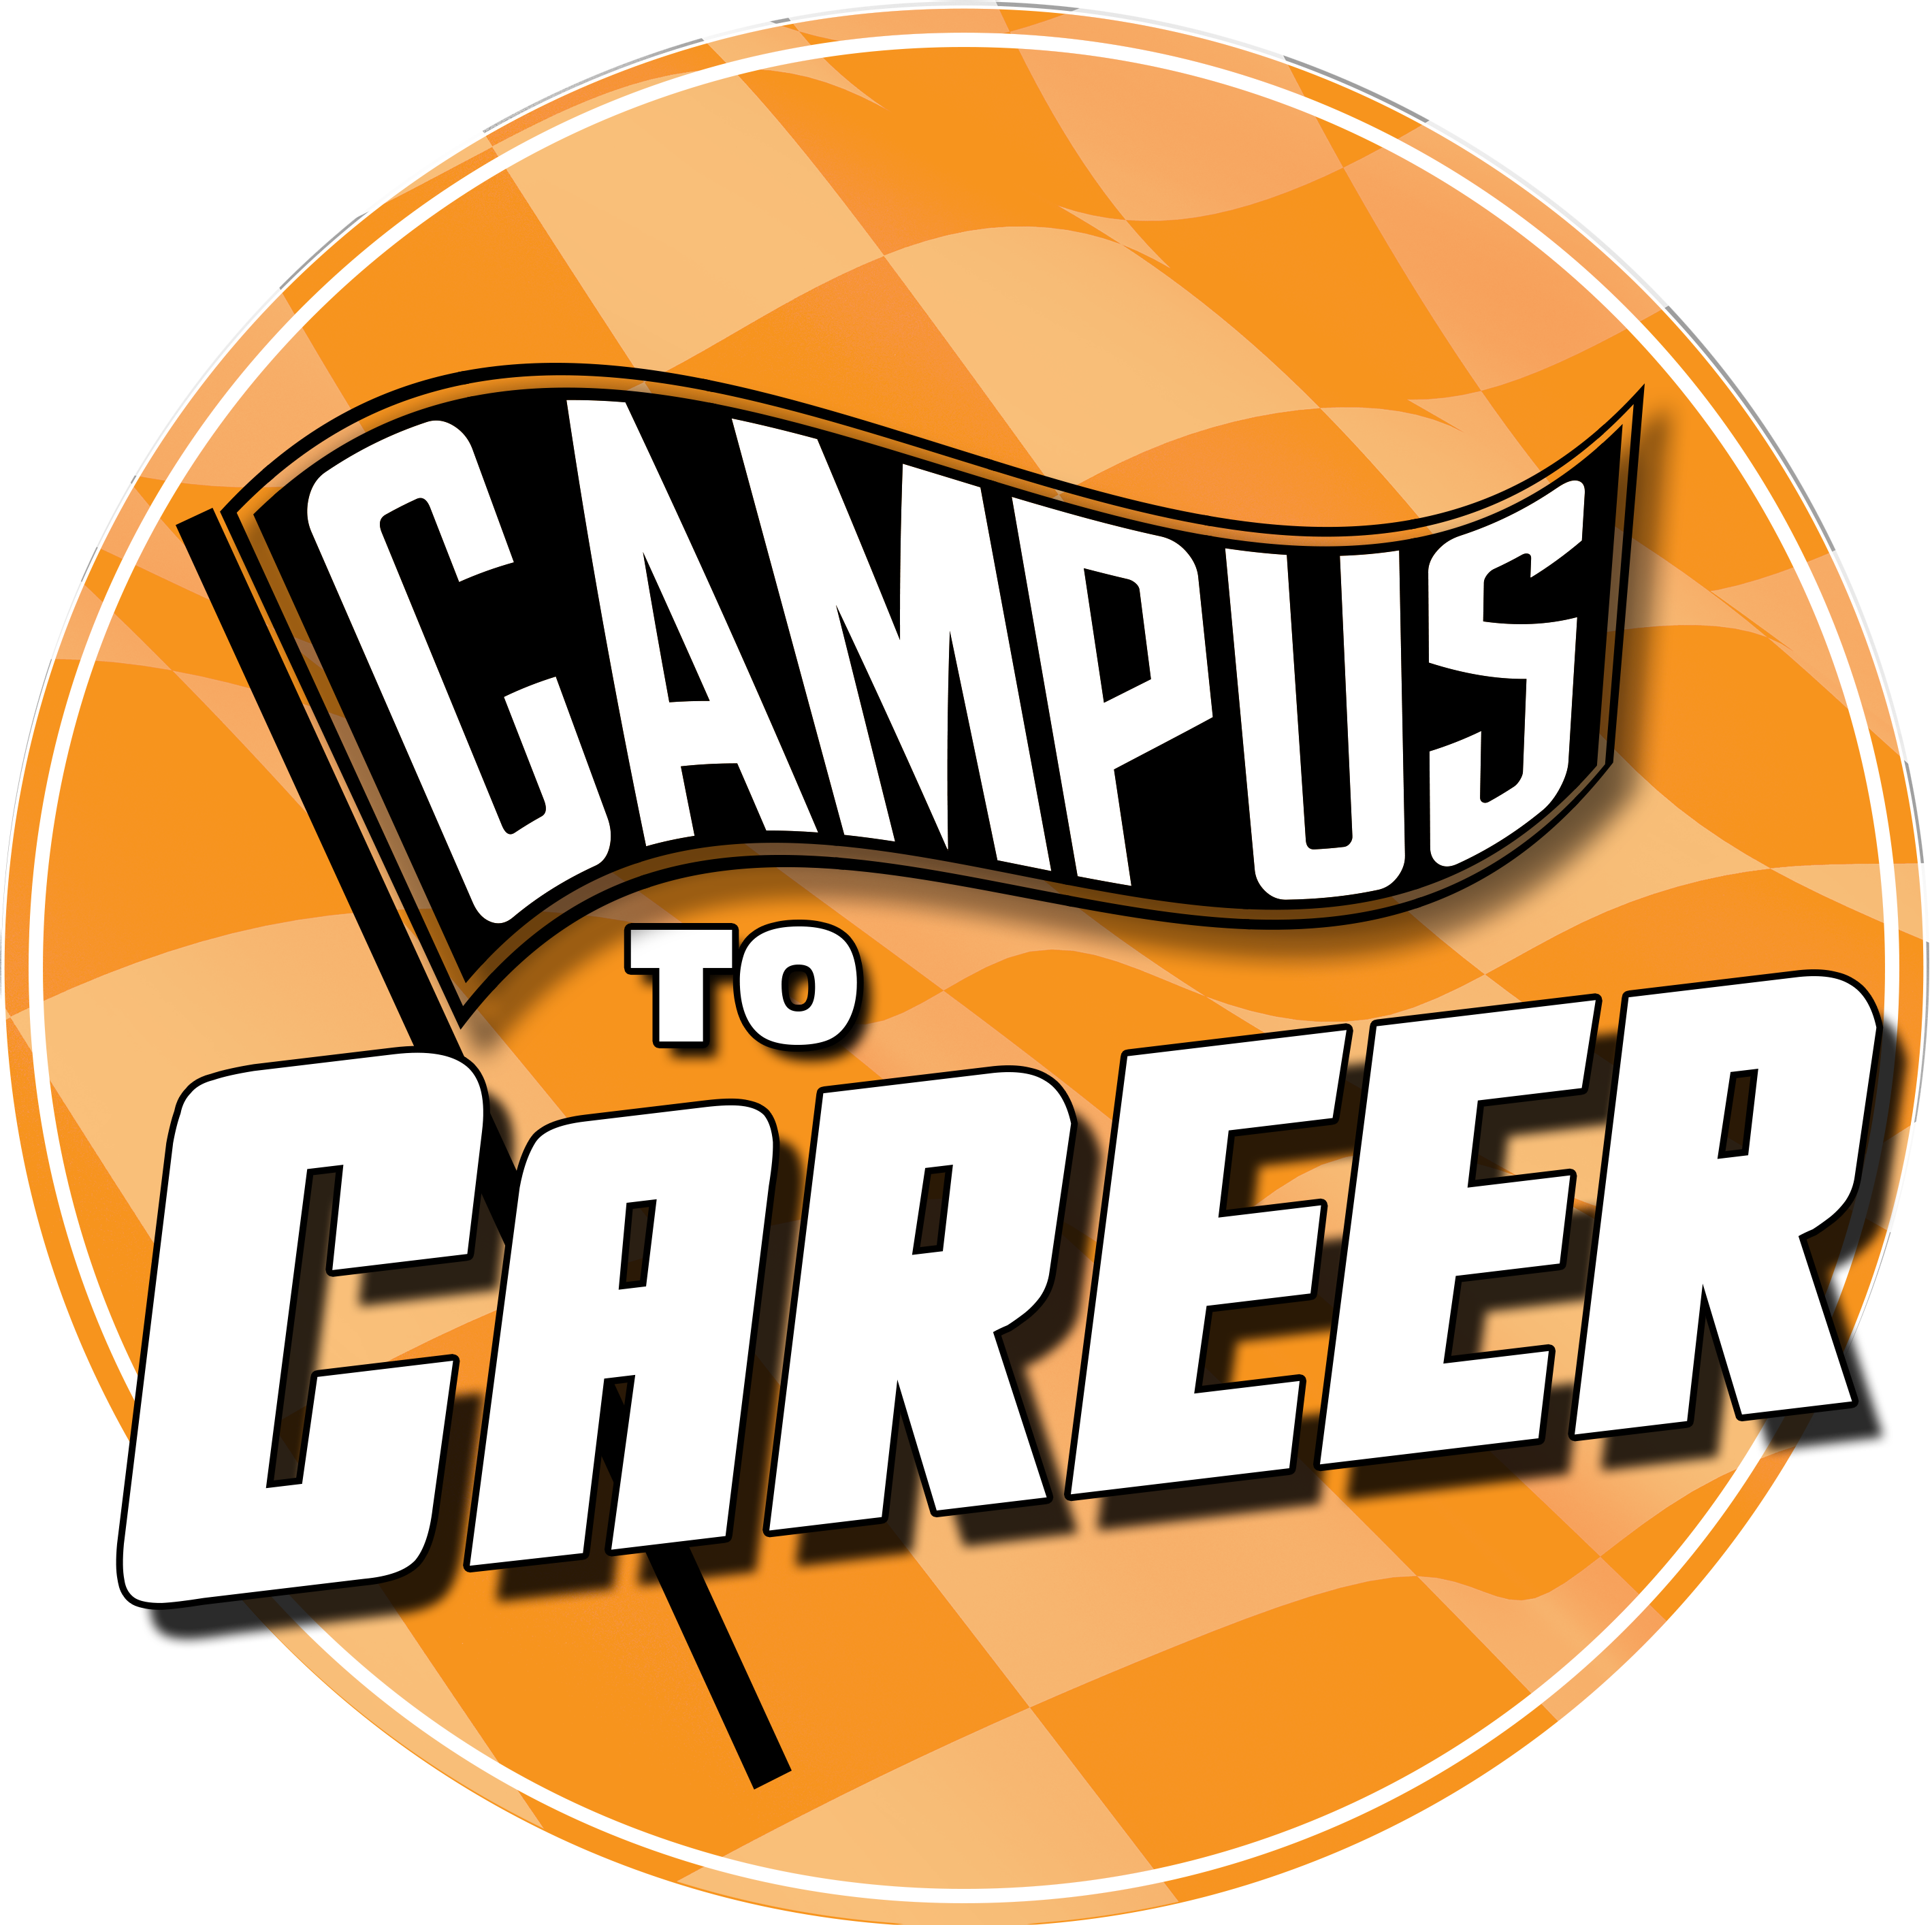 2020 Professional Development Conference: Campus to Career